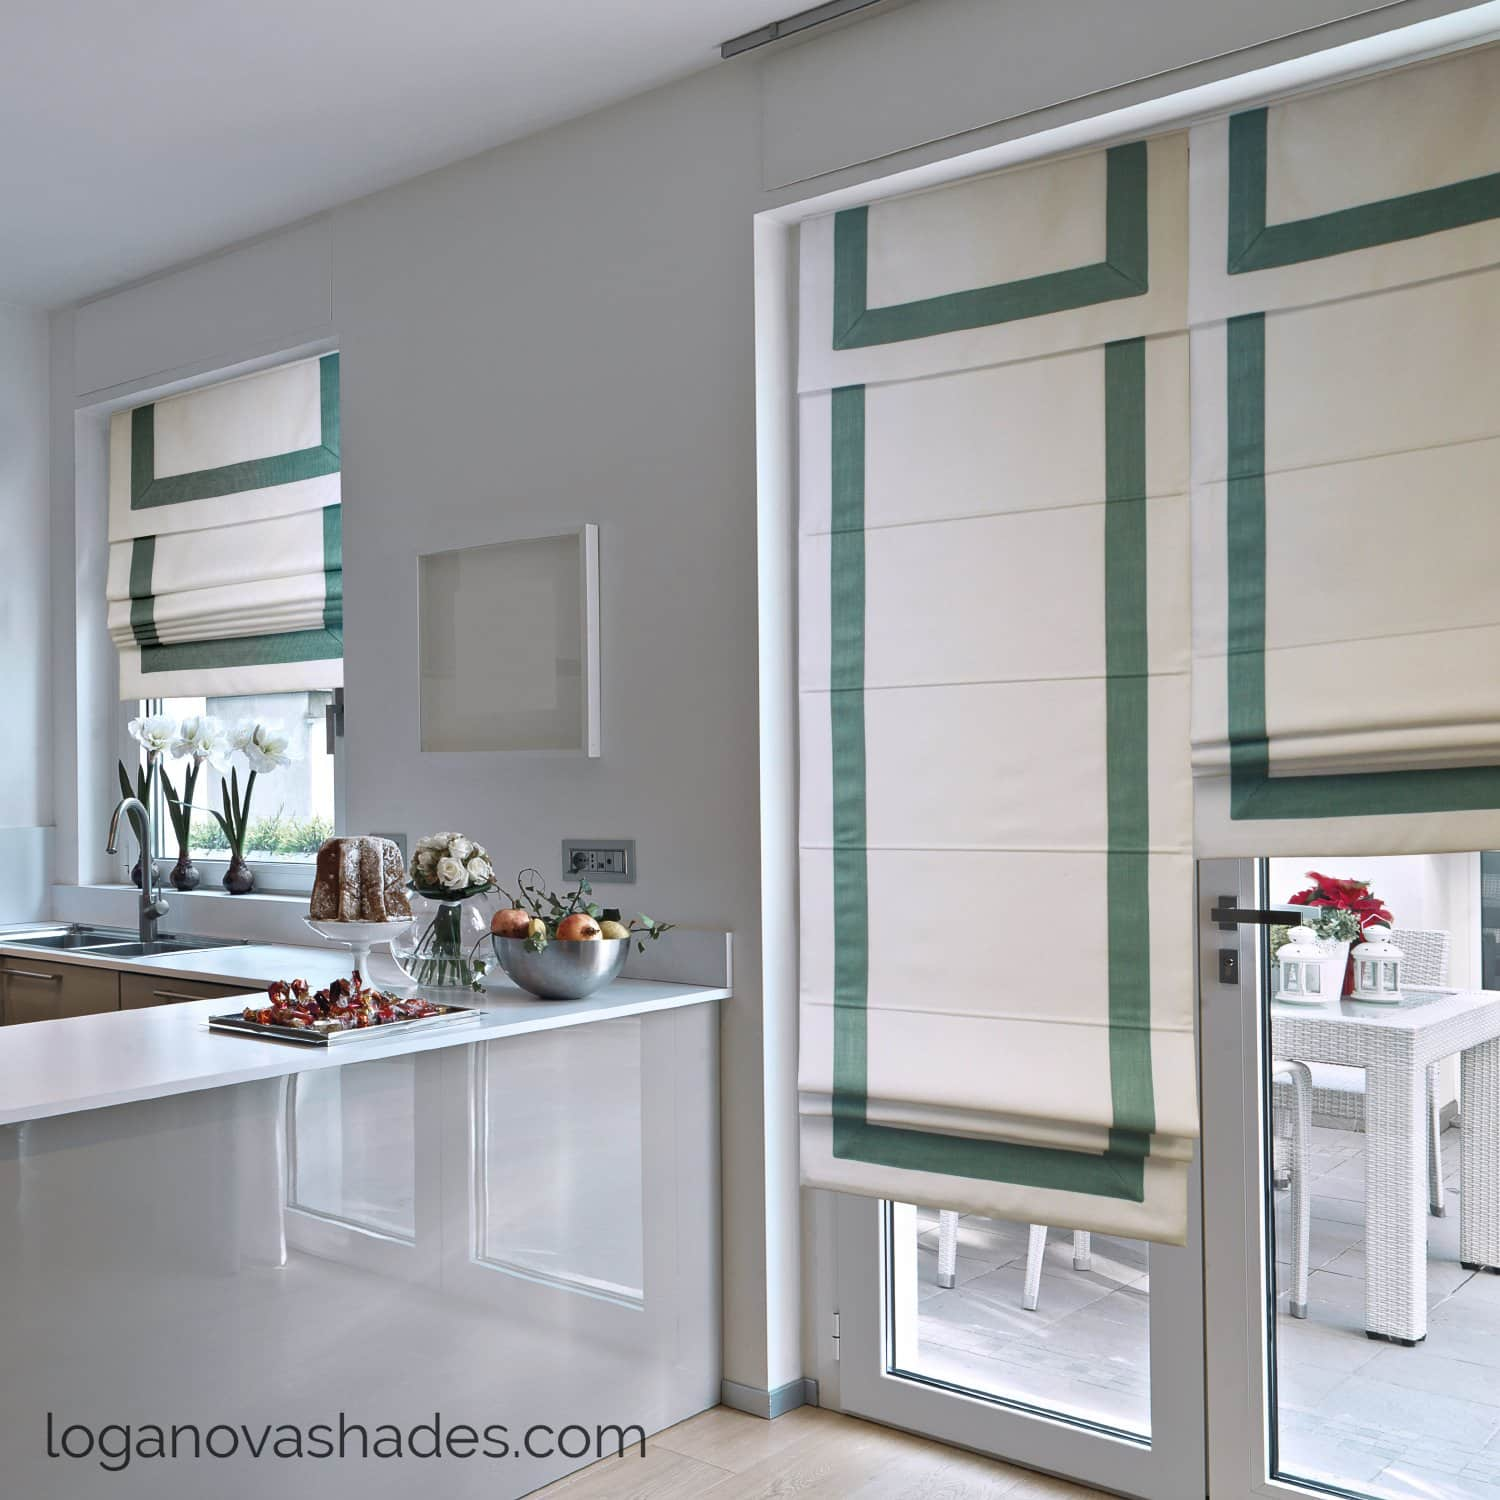 Window Treatments Trends: What's In and Out of Style? Great example of the almost imperceptible complementing shades for kitchen in white